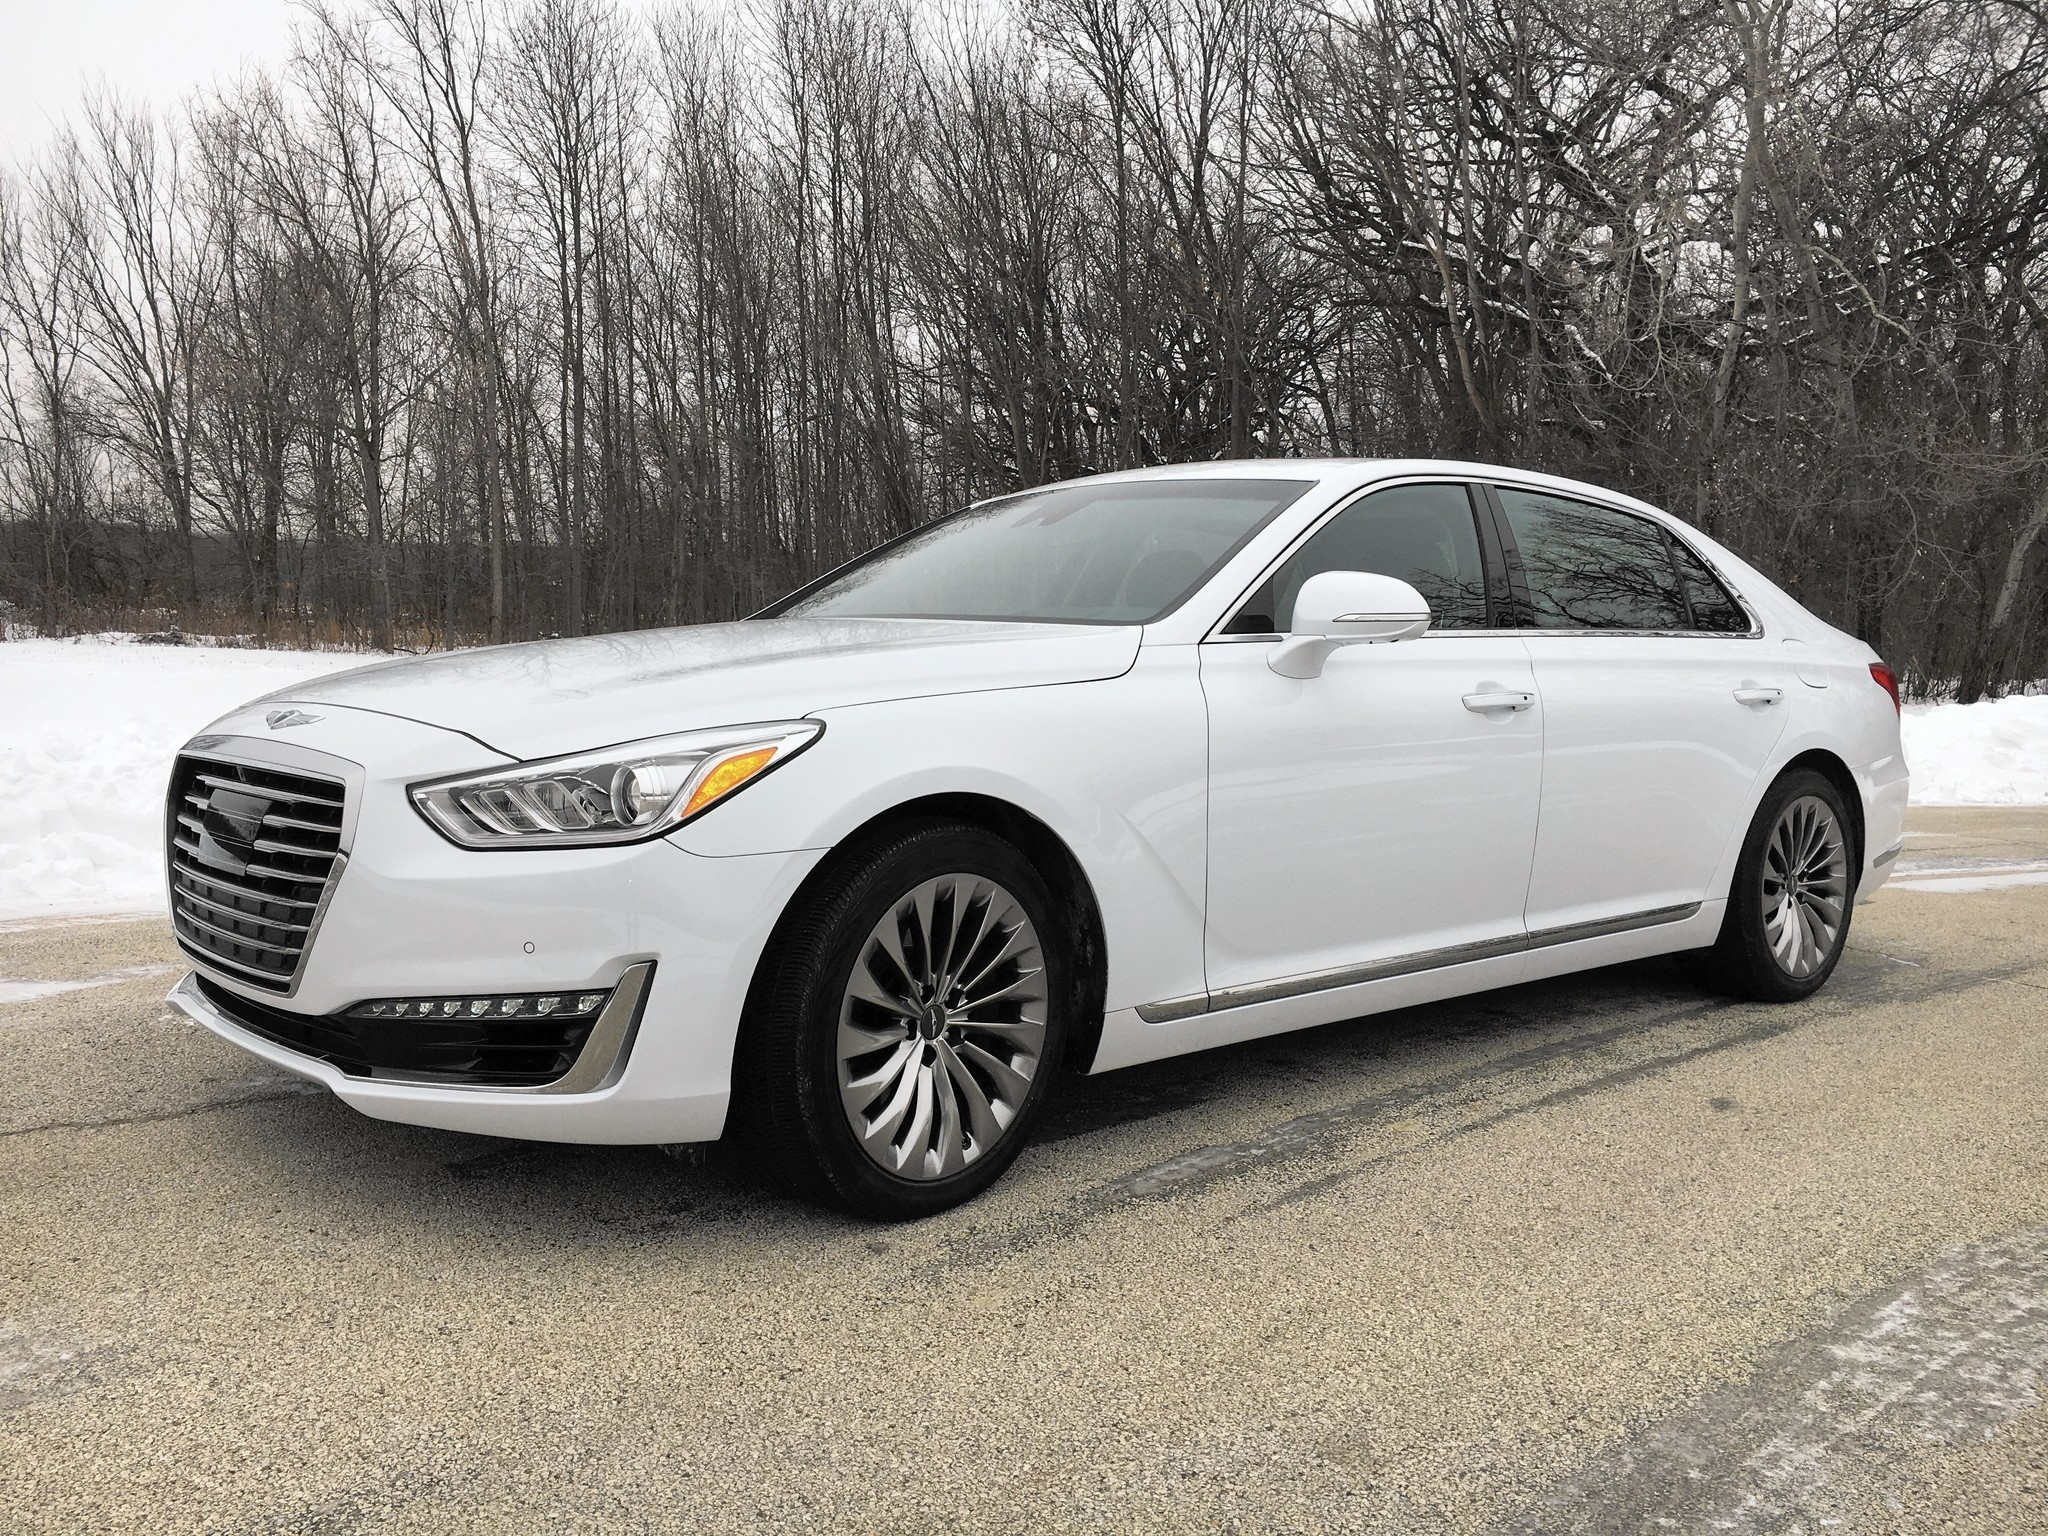 2017 Genesis G90 Flagship Sedan Carves Out A Spot For Modest Luxury